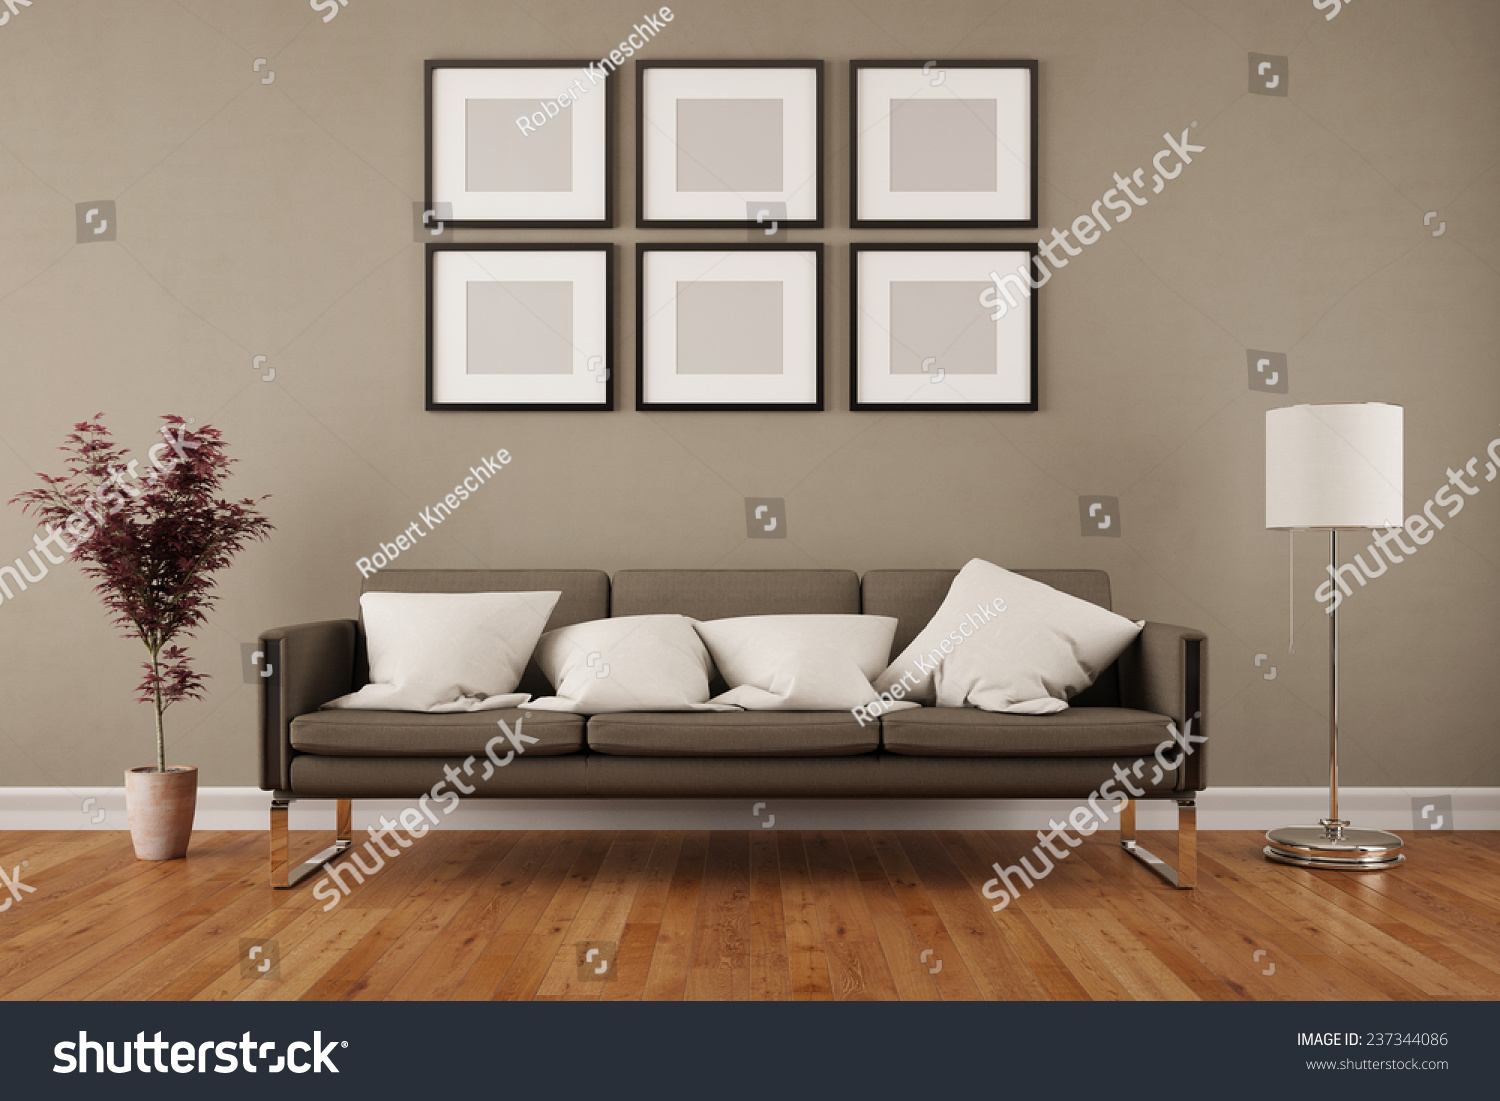 Wall Six Empty Picture Frames Living Stock Illustration 237344086 ...